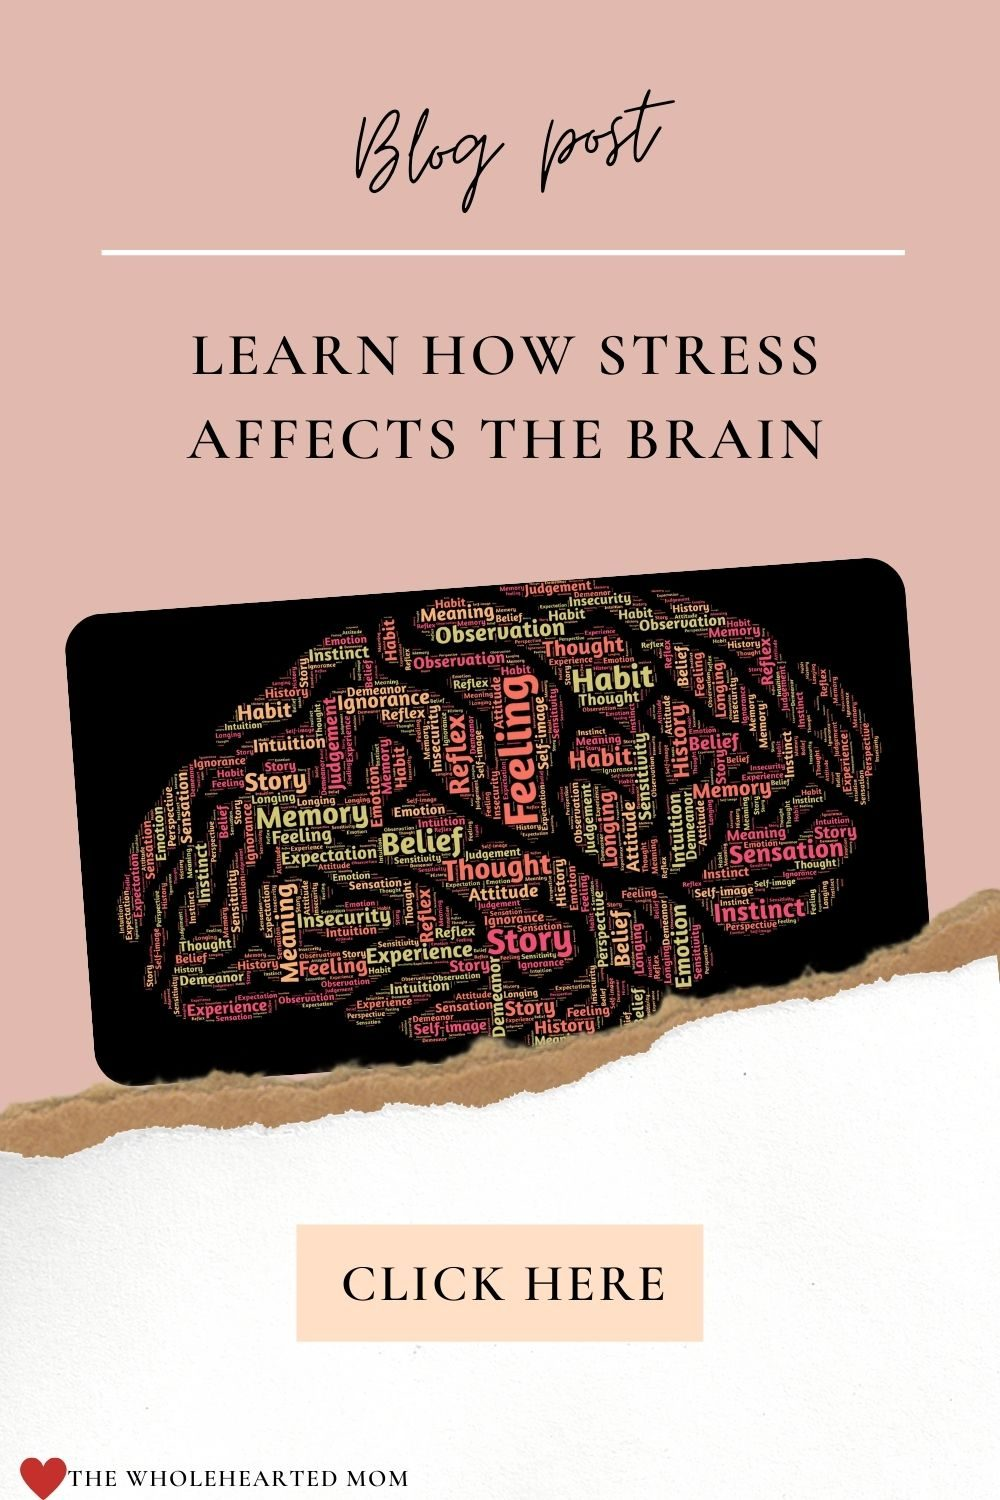 Learn how stress affects the brain